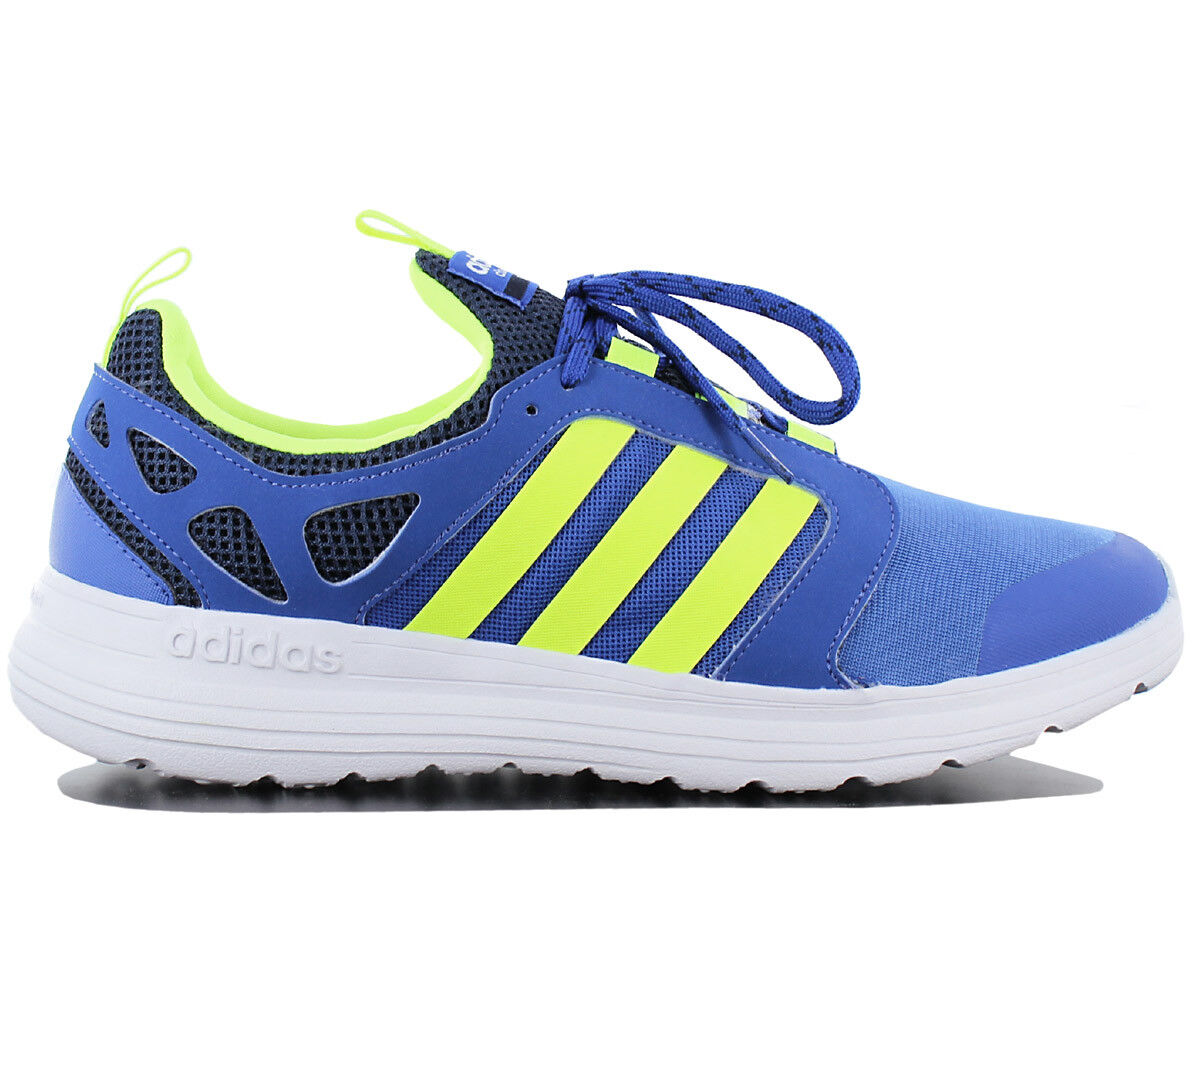 Adidas Cloudfoam Sprint Men's Shoes SPORT SNEAKERS RUNNING SHOES TRAINERS AQ1489 Seasonal price cuts, discount benefits